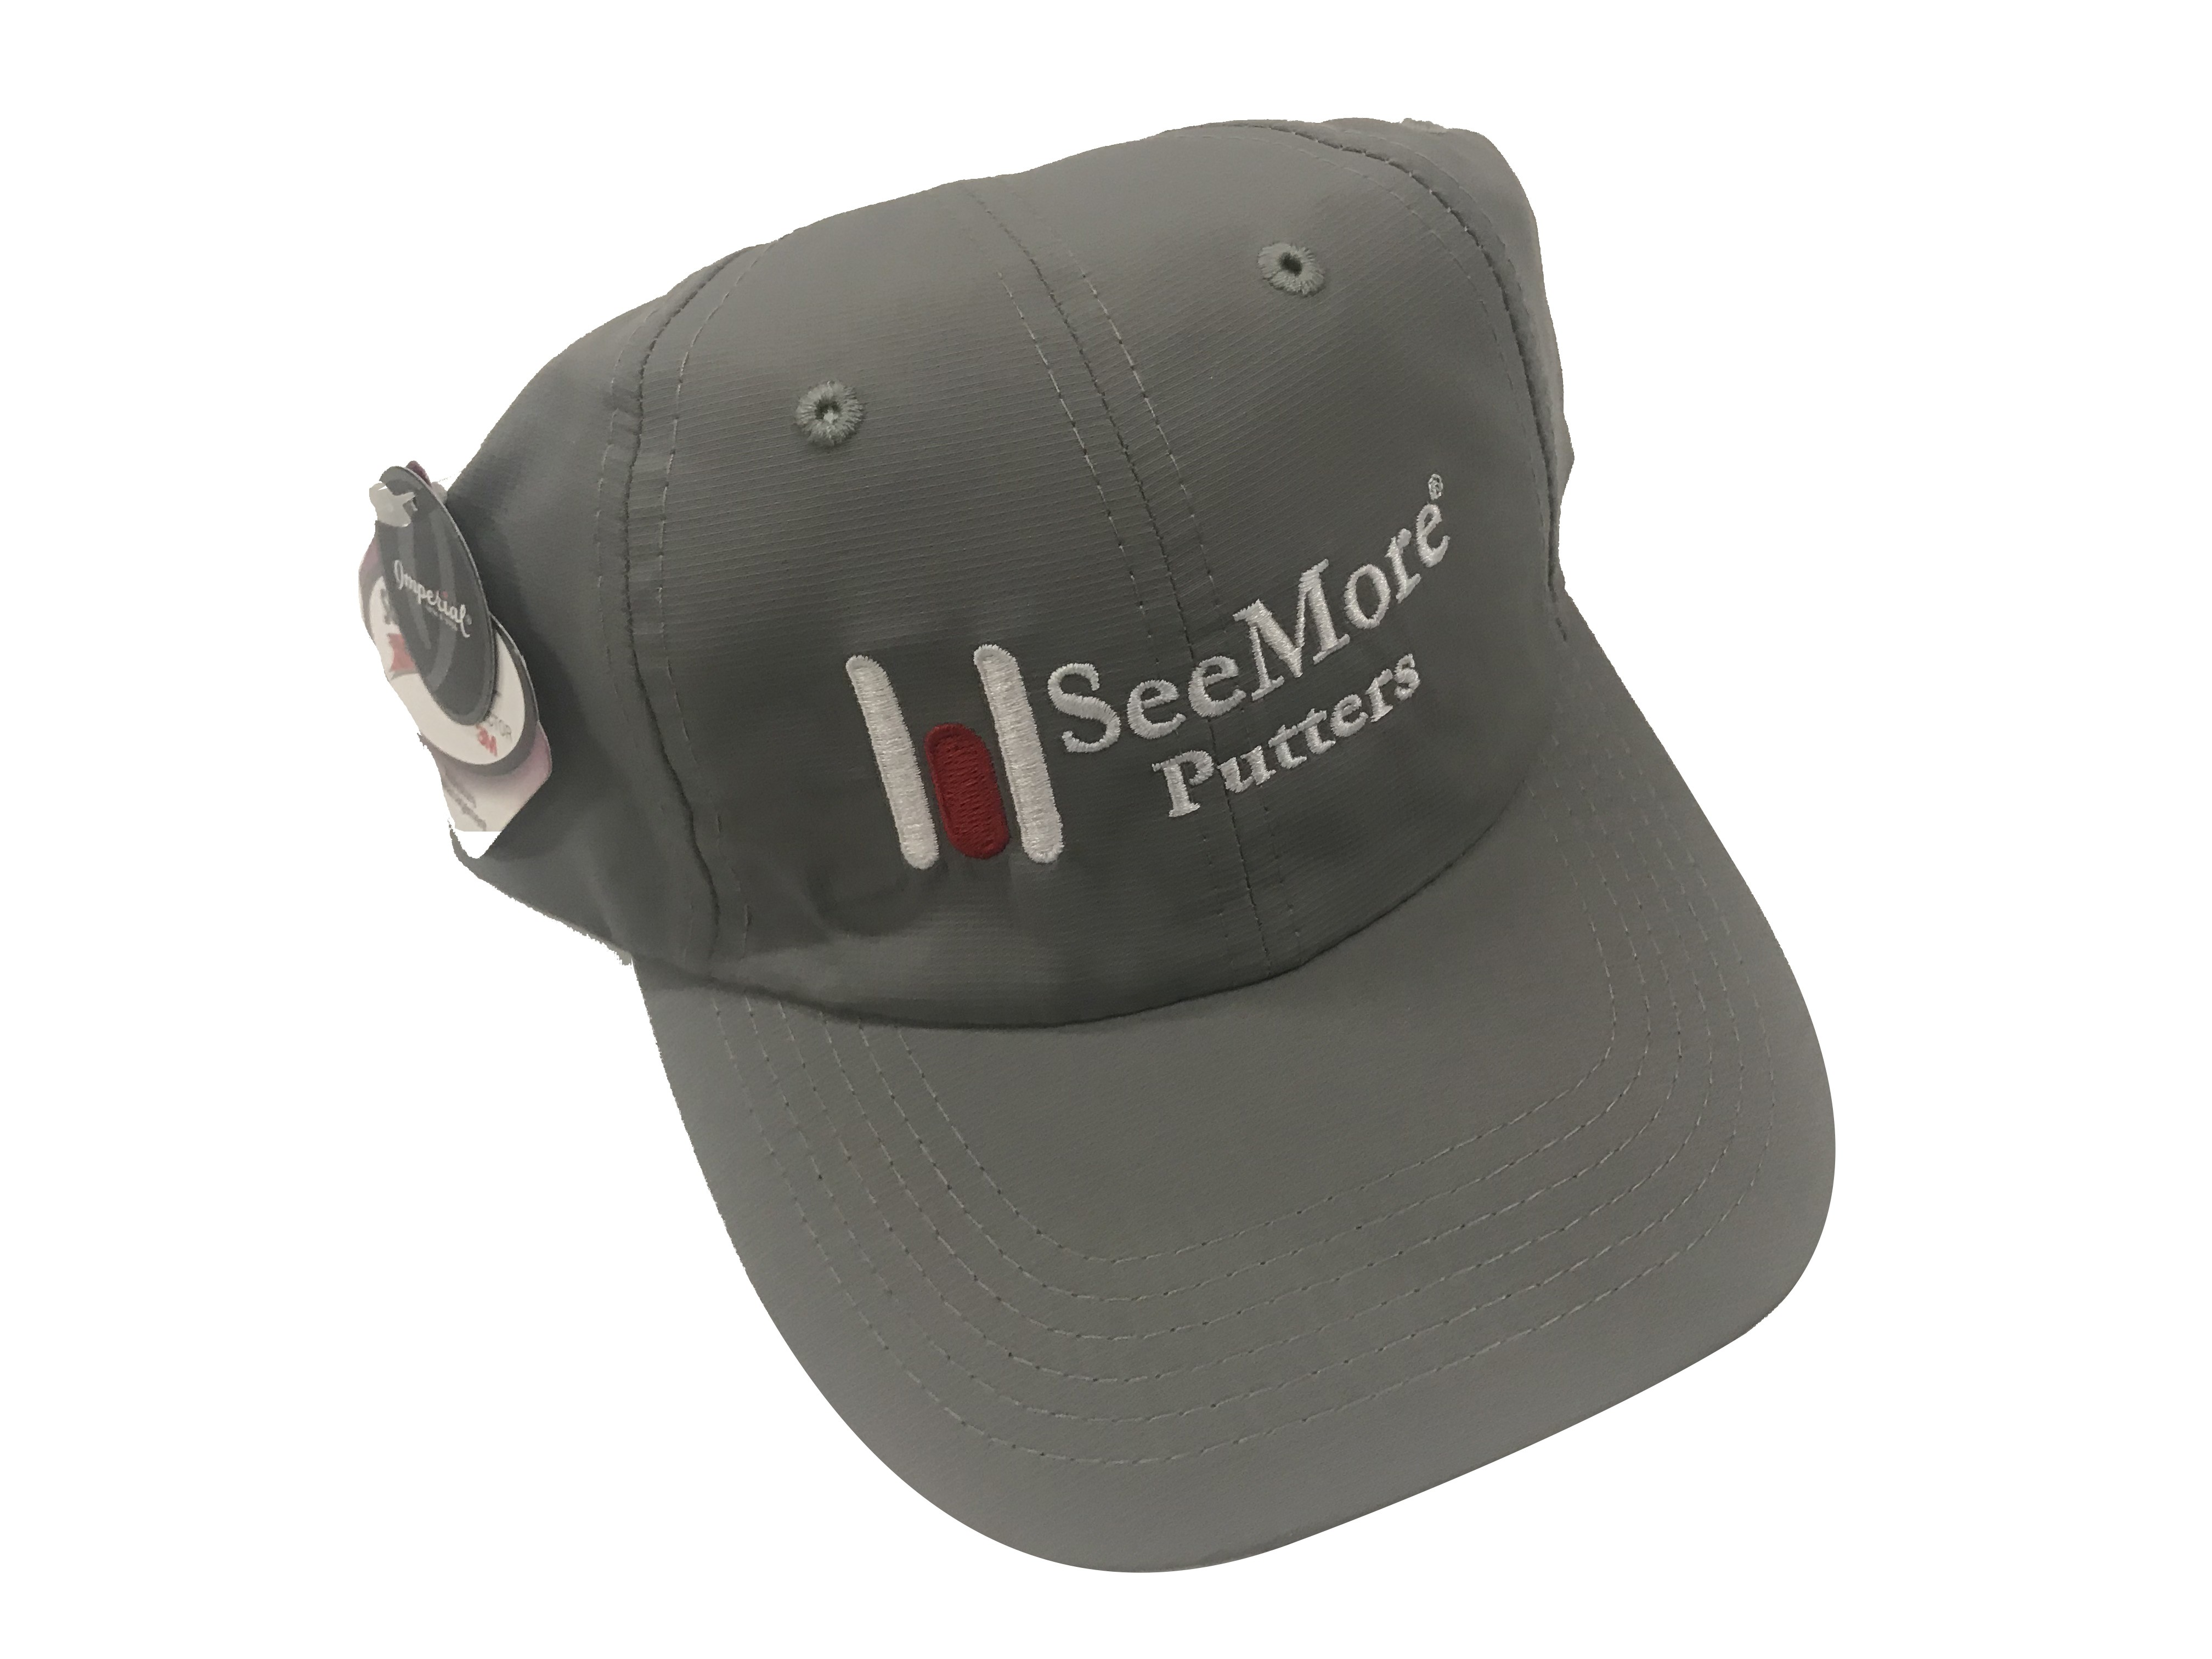 Imperial Hat with SeeMore Putter Logo - Gray